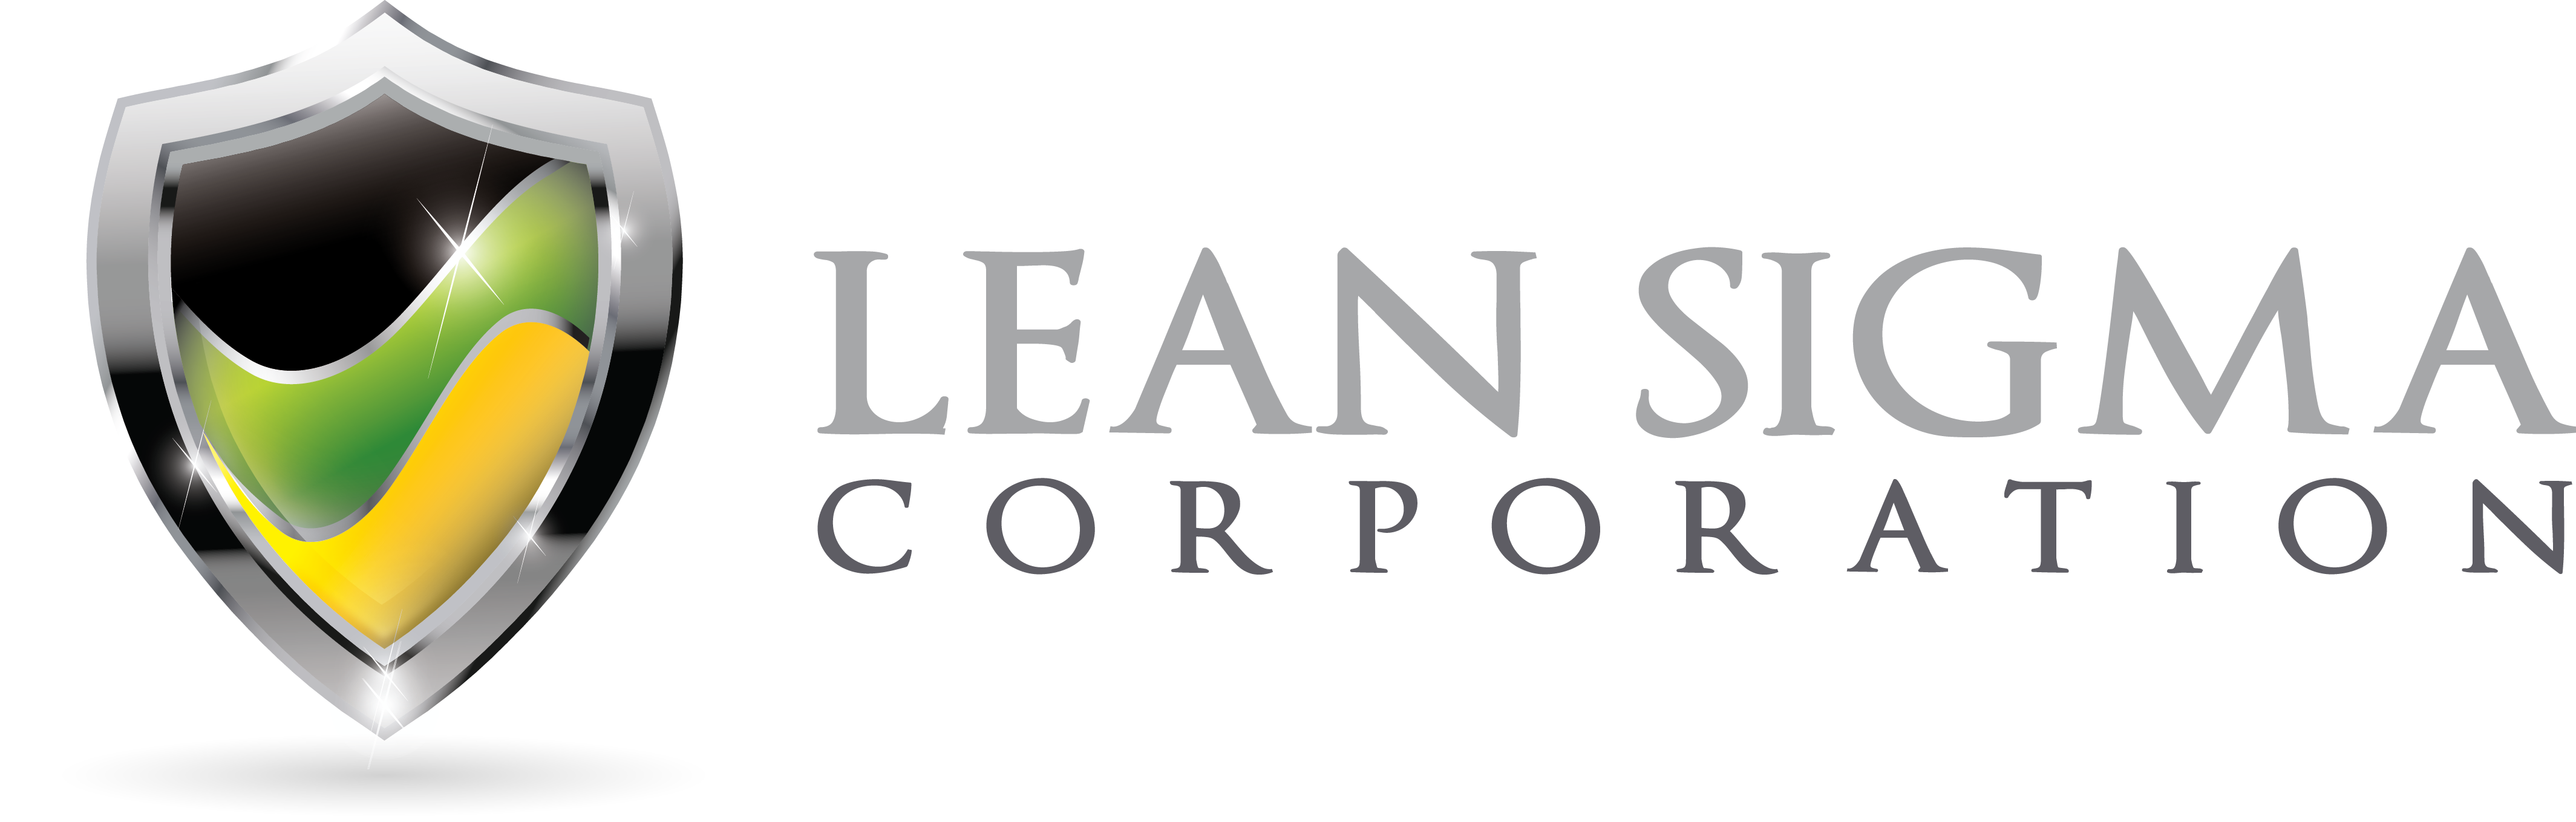 Lean Sigma Corporation Six Sigma Training Provider